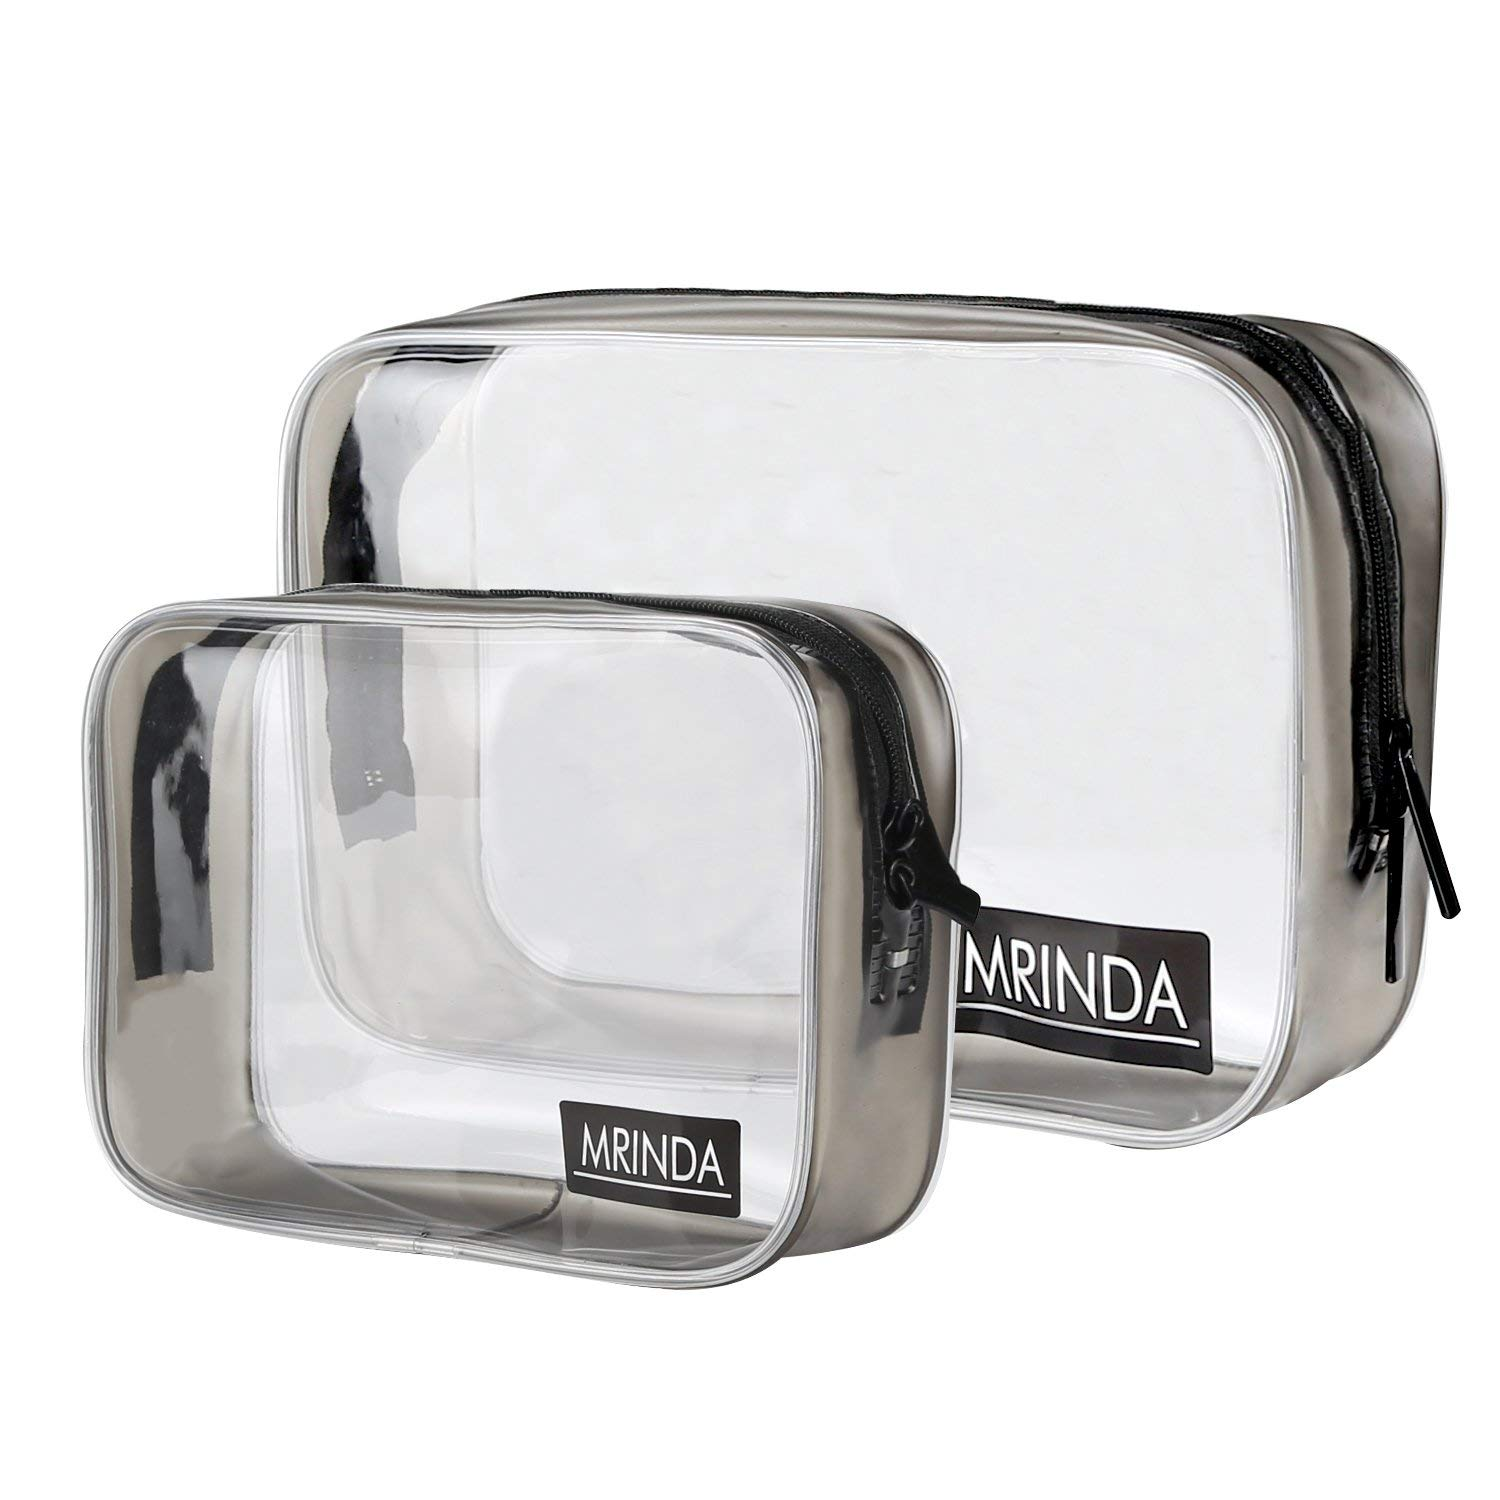 c2960f566df4 Get Quotations · MRINDA-Clear Travel Bag